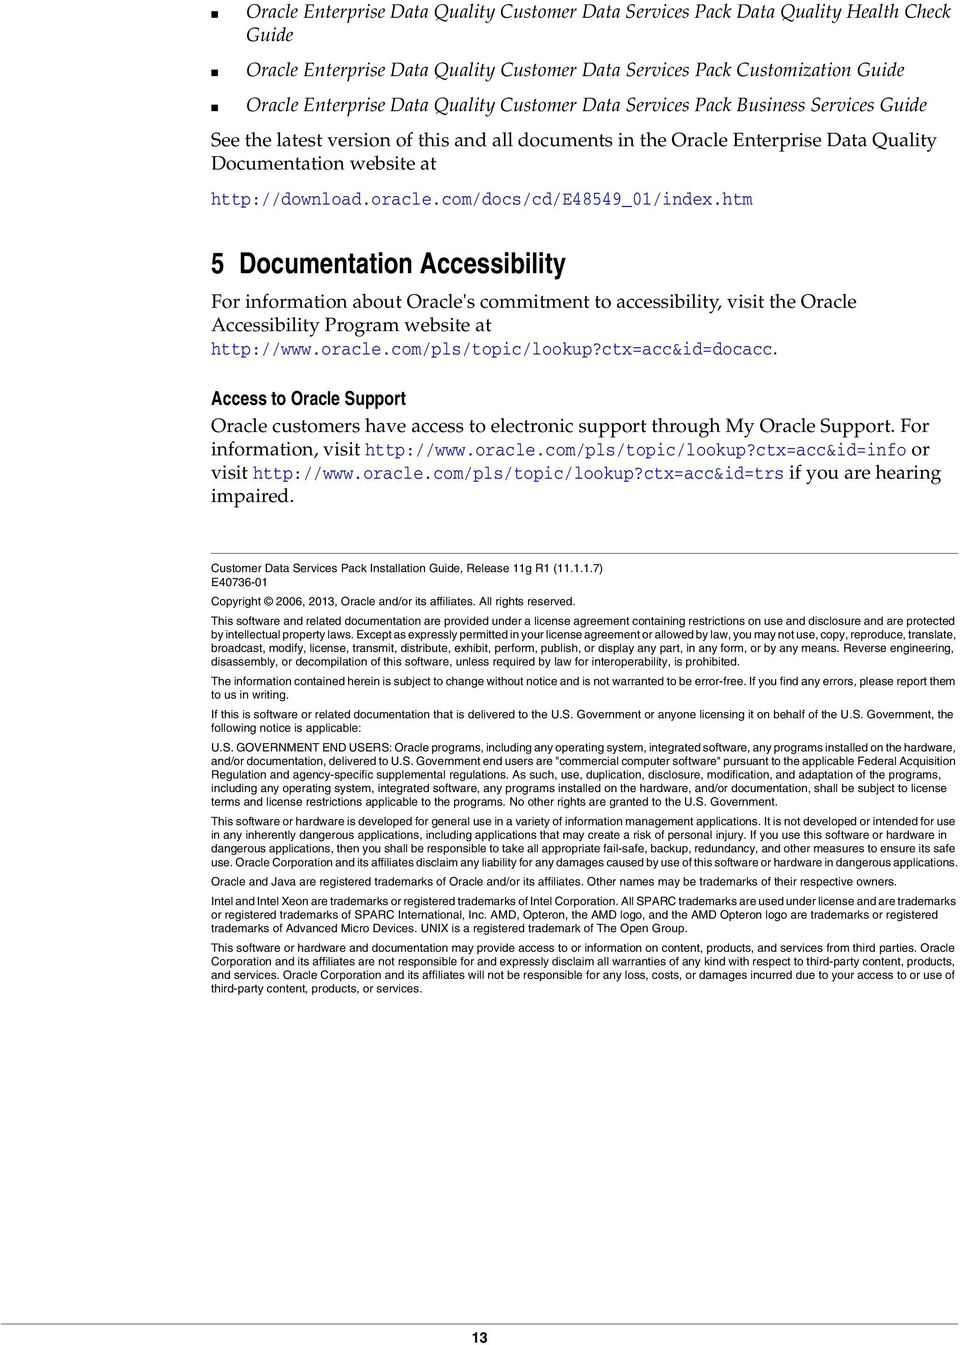 com/docs/cd/e48549_01/index.htm 5 Documentation Accessibility For information about Oracle's commitment to accessibility, visit the Oracle Accessibility Program website at http://www.oracle.